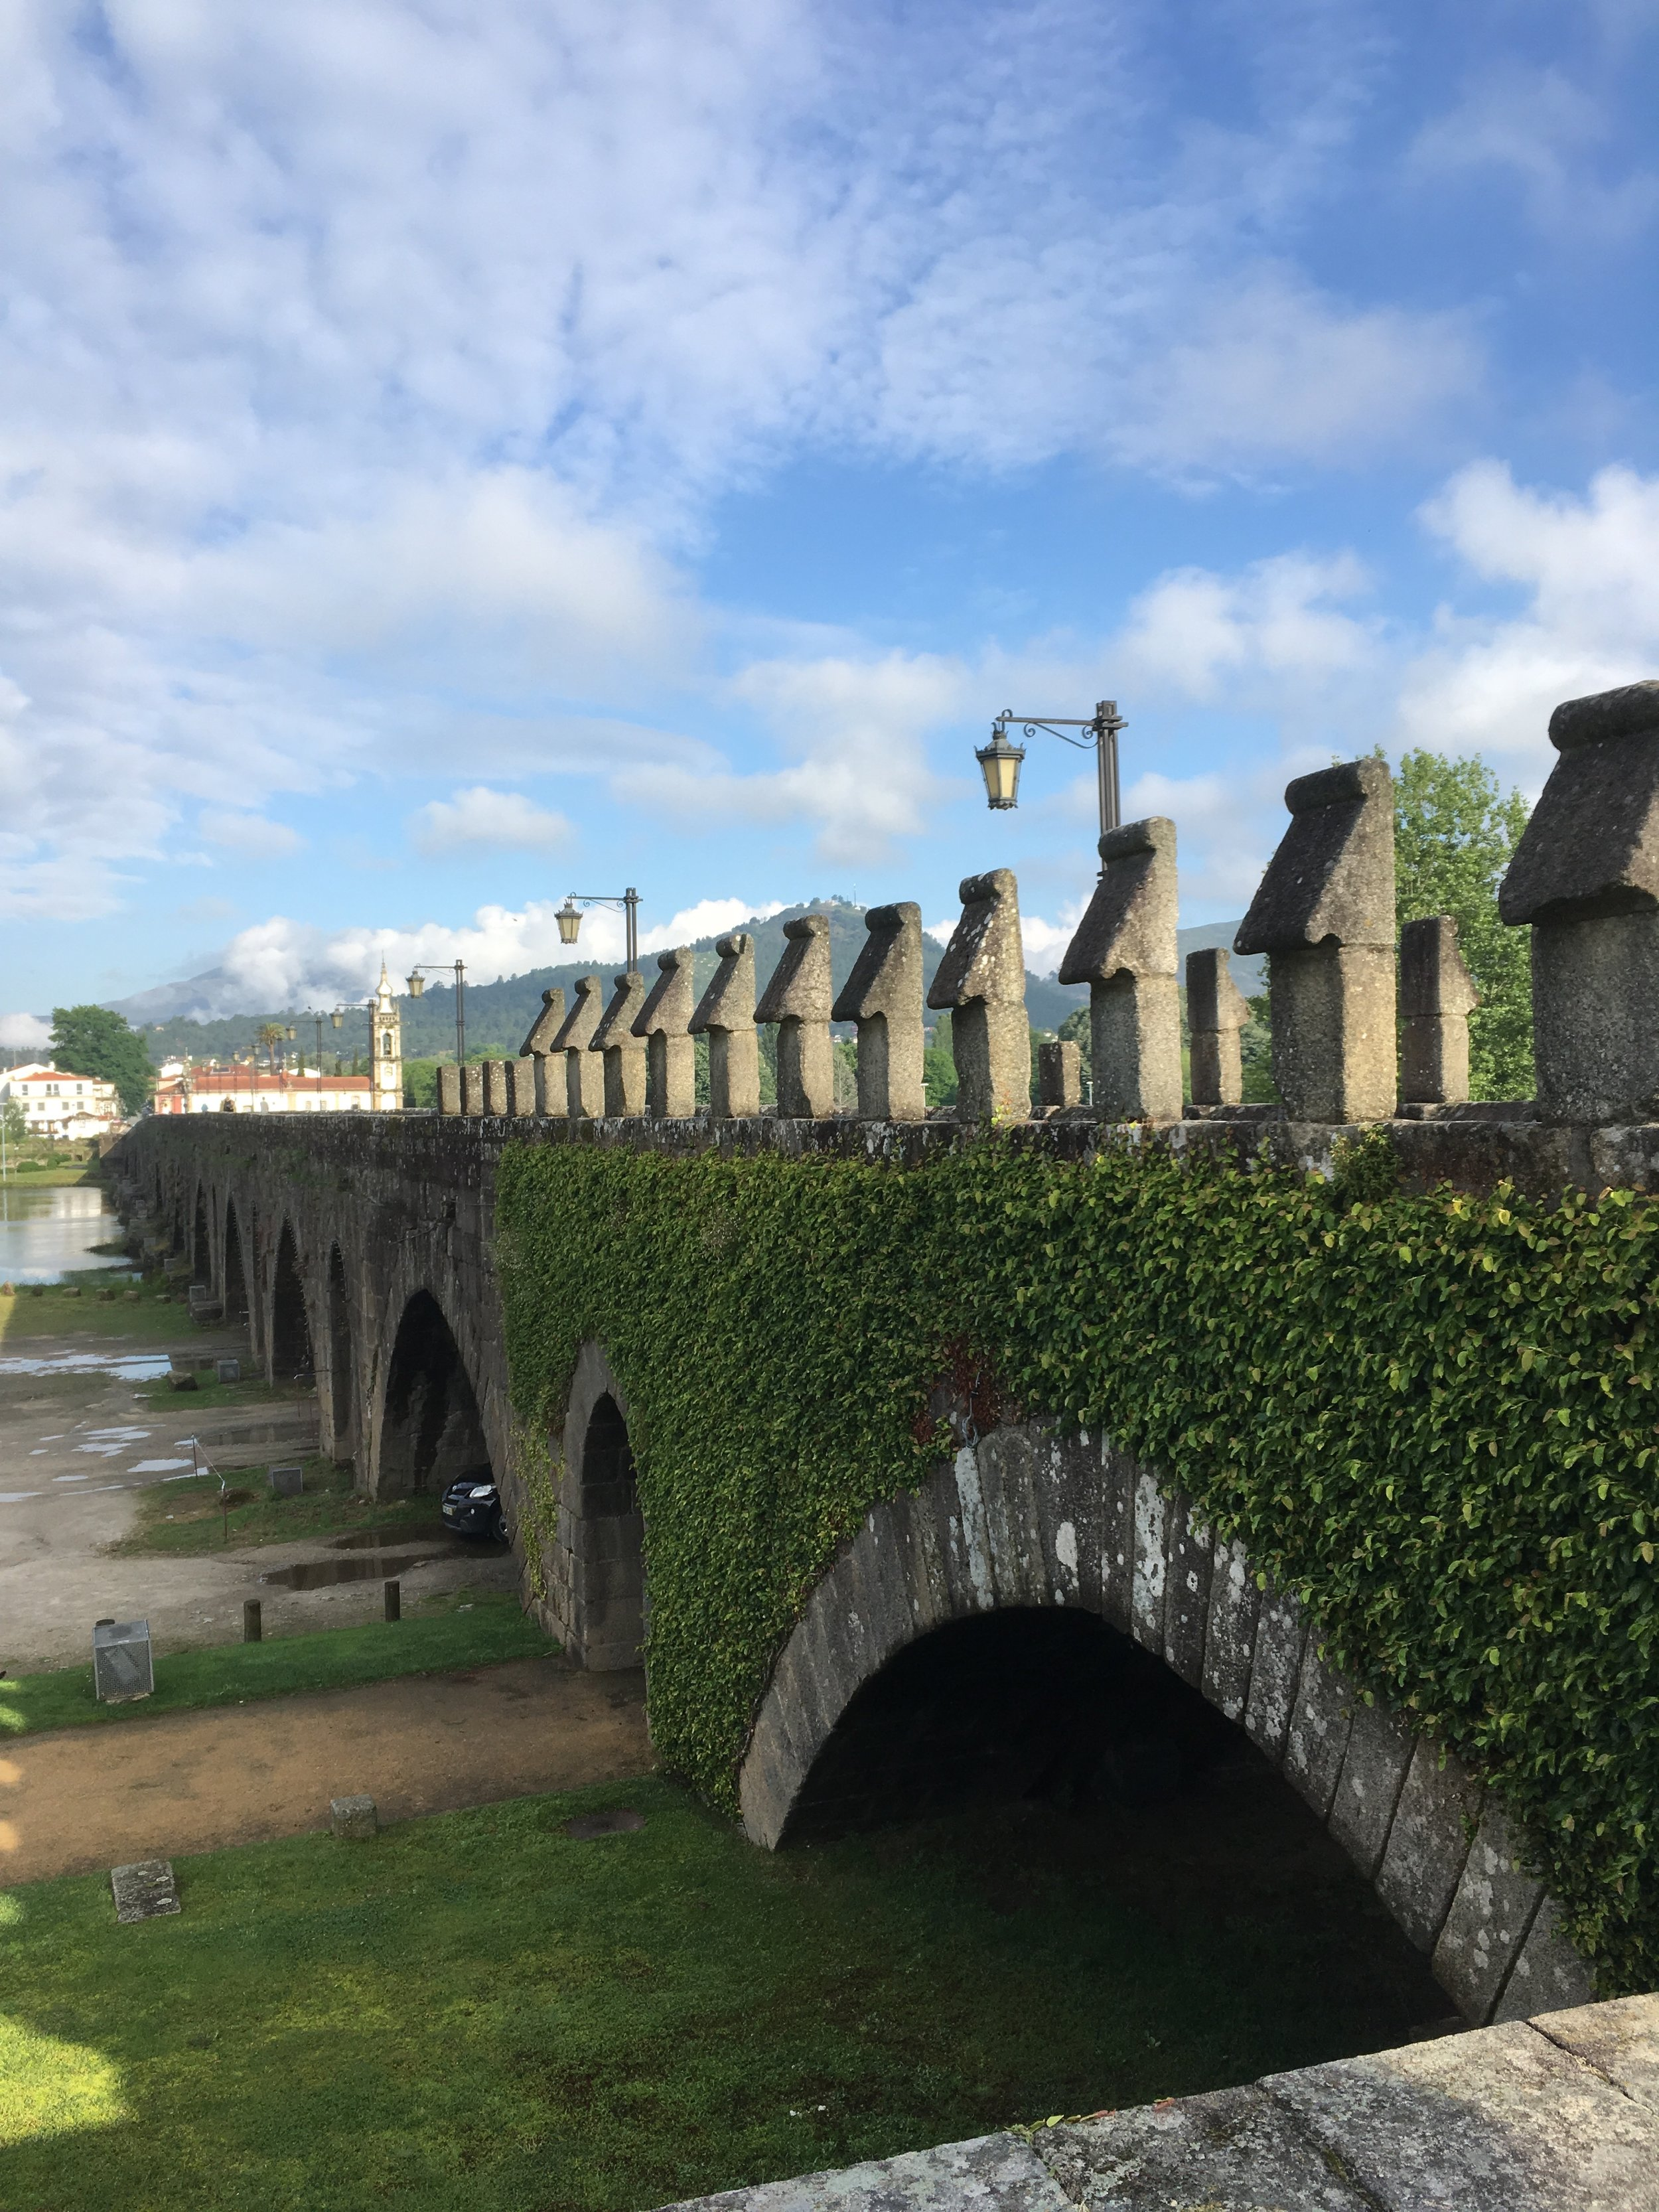 The beautiful Medieval bridge we crossed at the beginning of our day